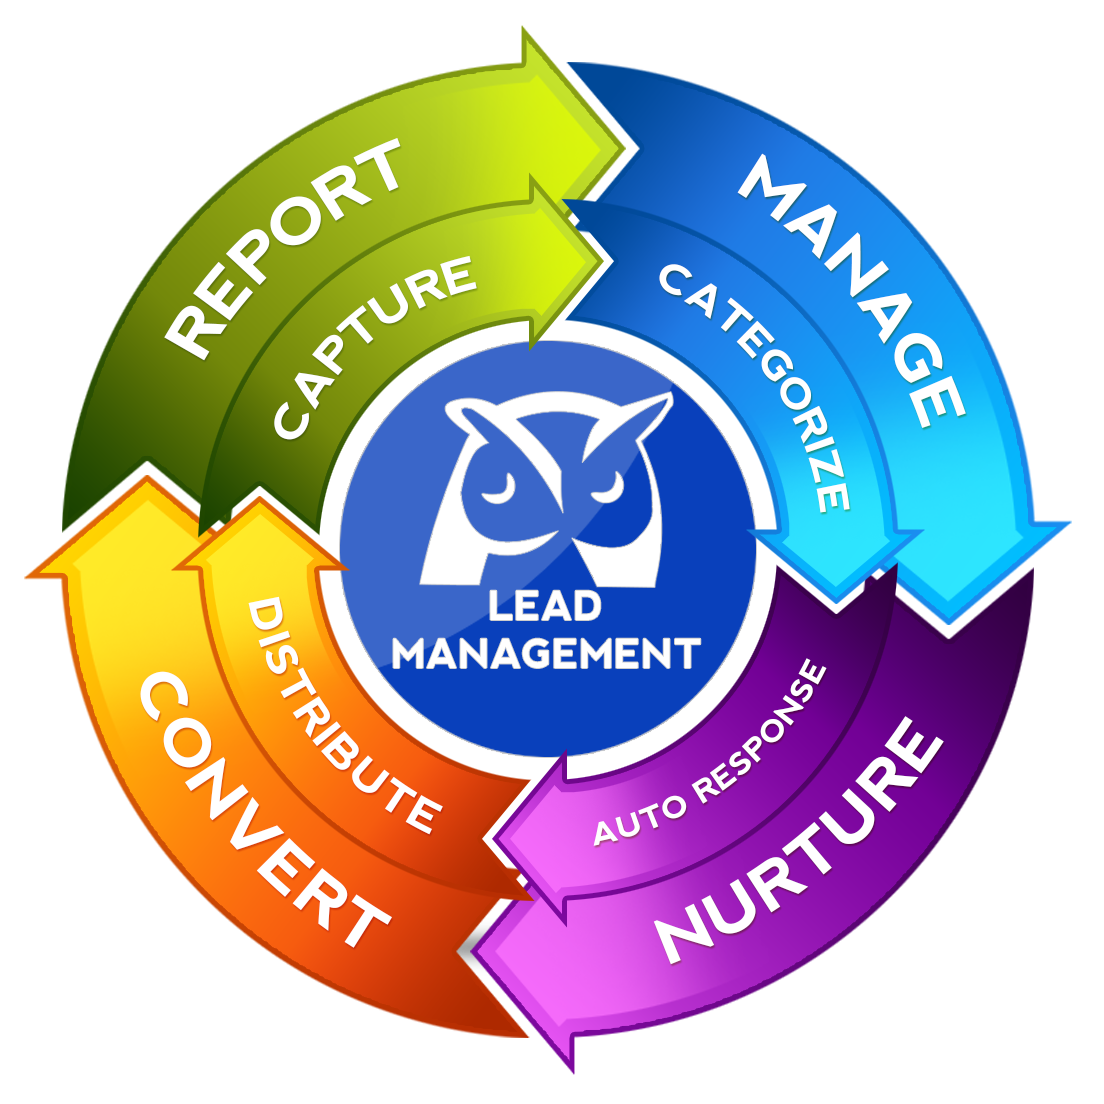 http://www.wiseagent.com/images/lead-management-flow-chart.png